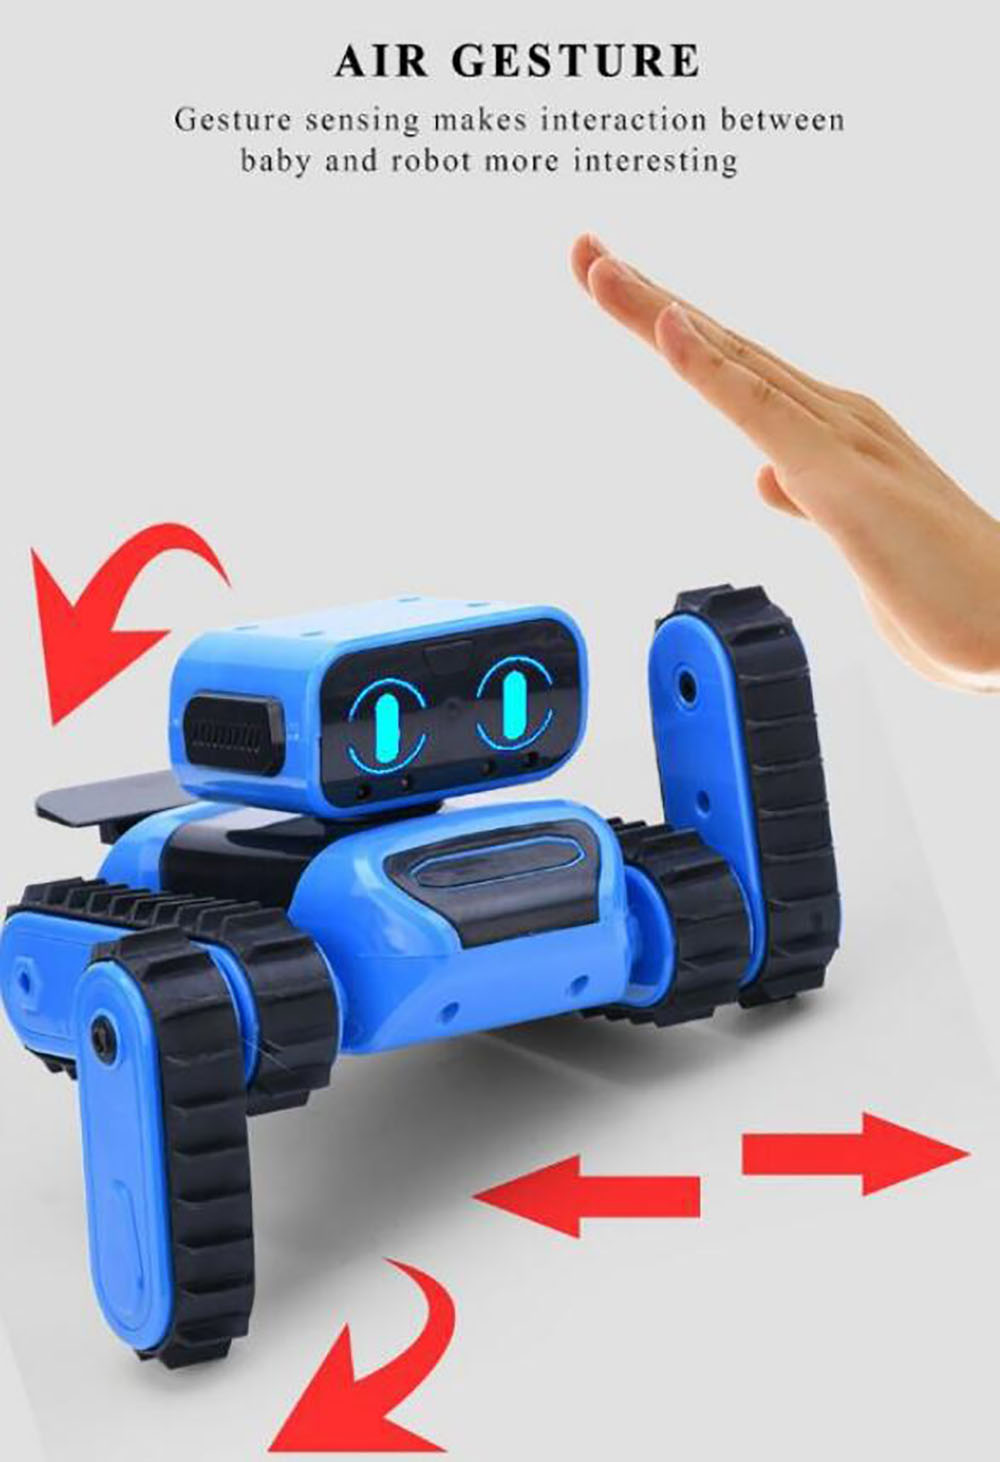 997 STEM DIY Gesture Sensor Follow / Avoidance Stunt Robot Educational Toy Stand-alone Version - Dodger Blue